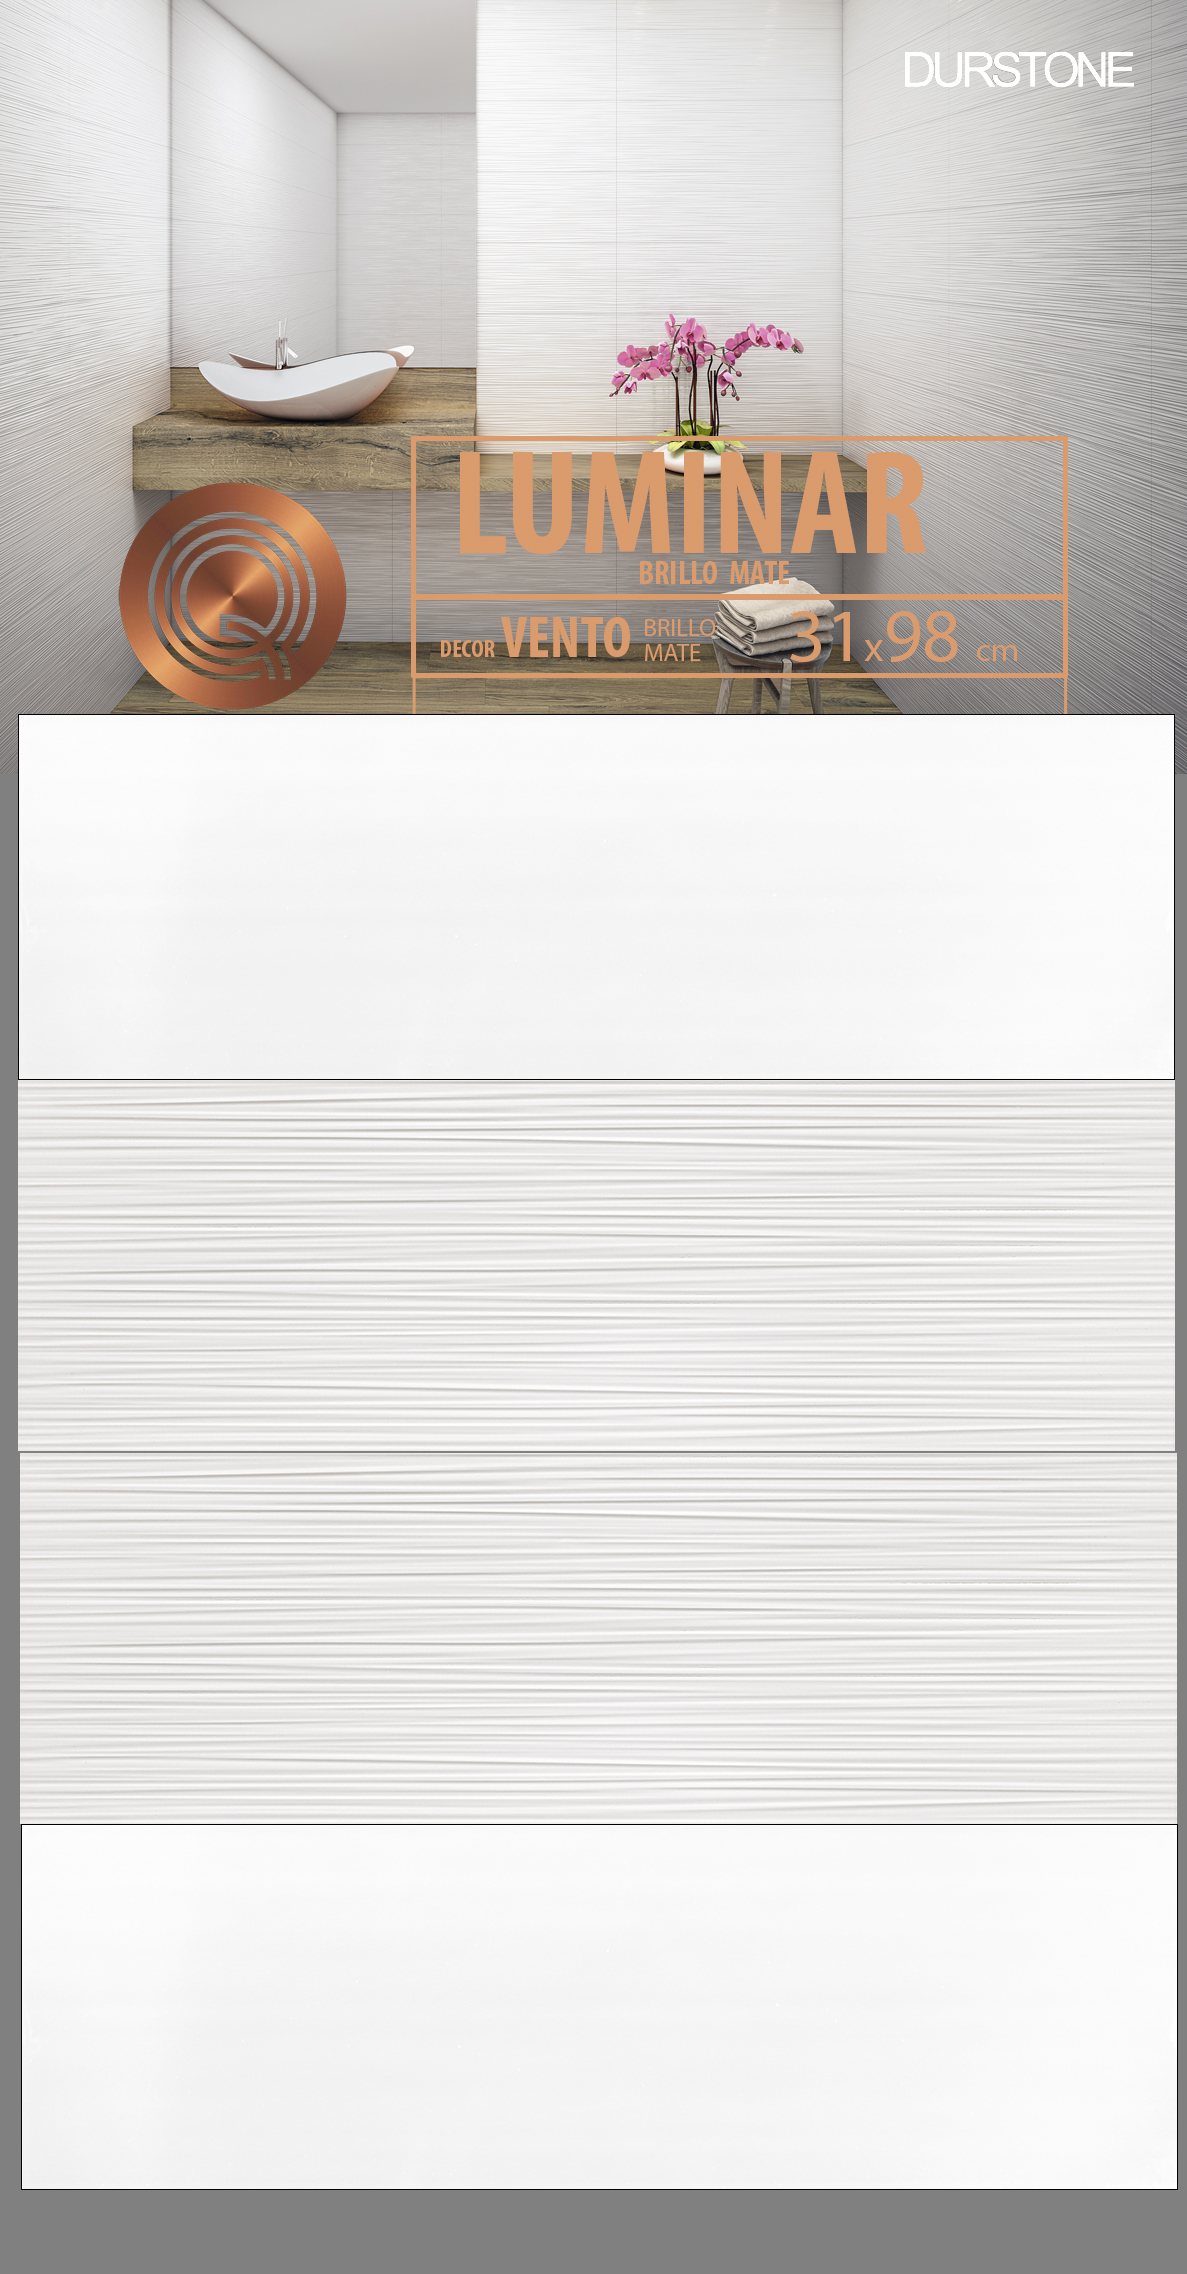 RV PANEL MIX LUMINAR / VENTO Cod. 5661 Brillo / Cod. 5660 Mate